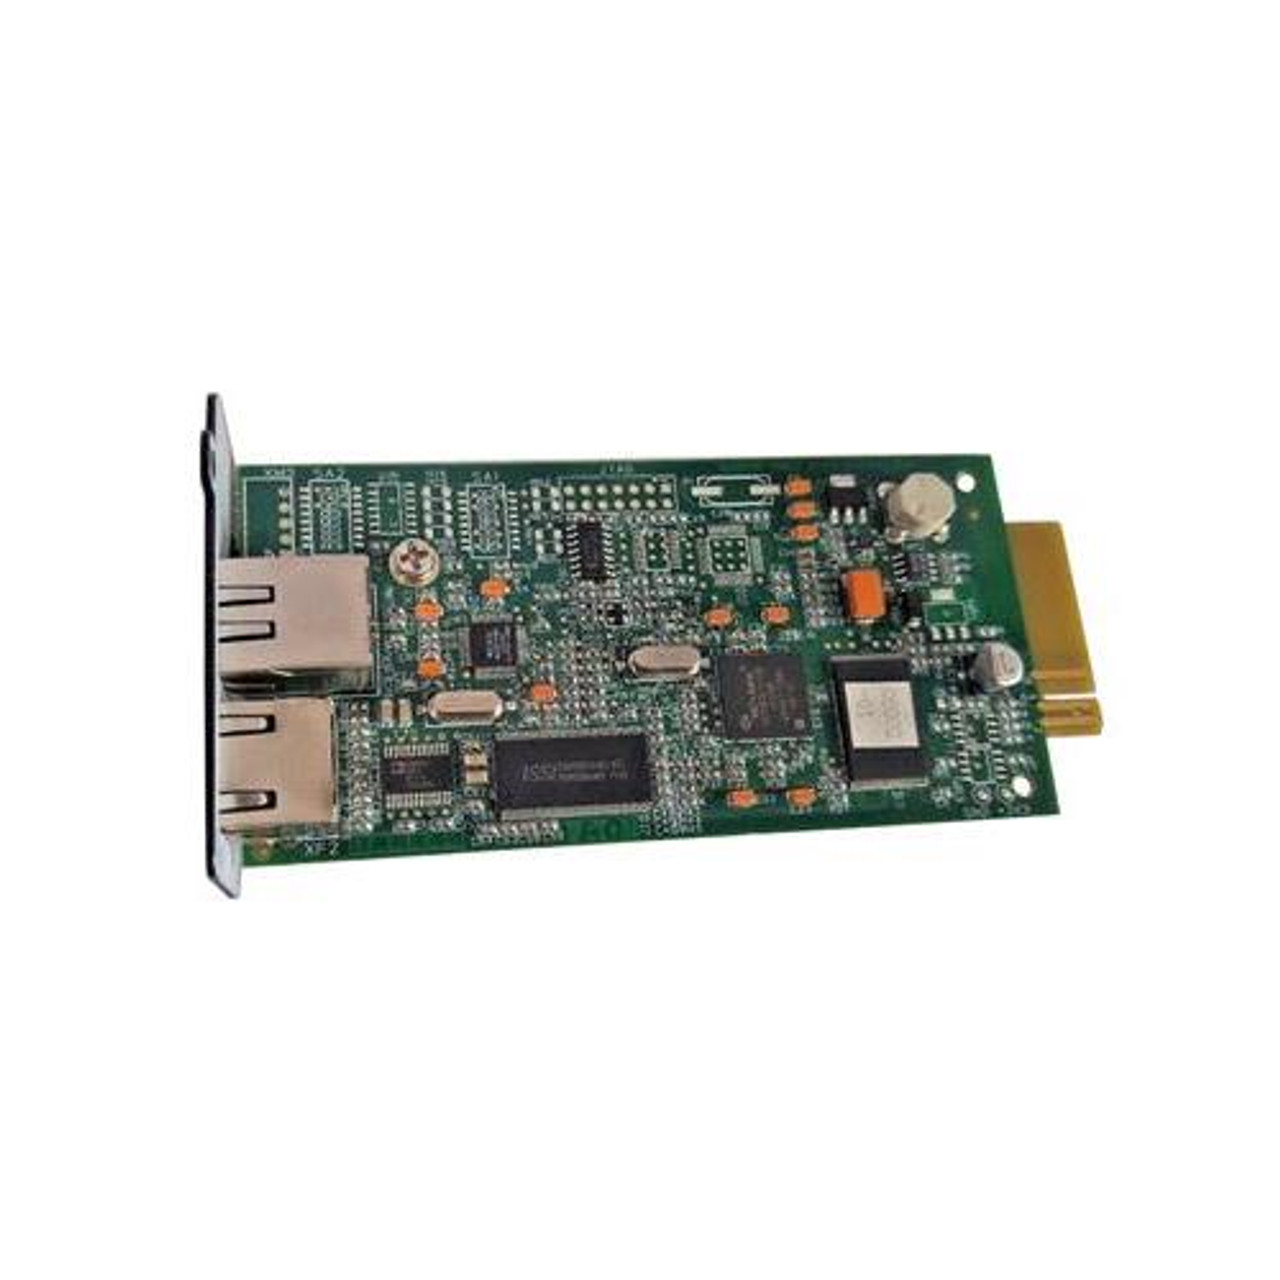 455882-001 HP BLC VC FLEX-10 10GB ETHERNET MODULE